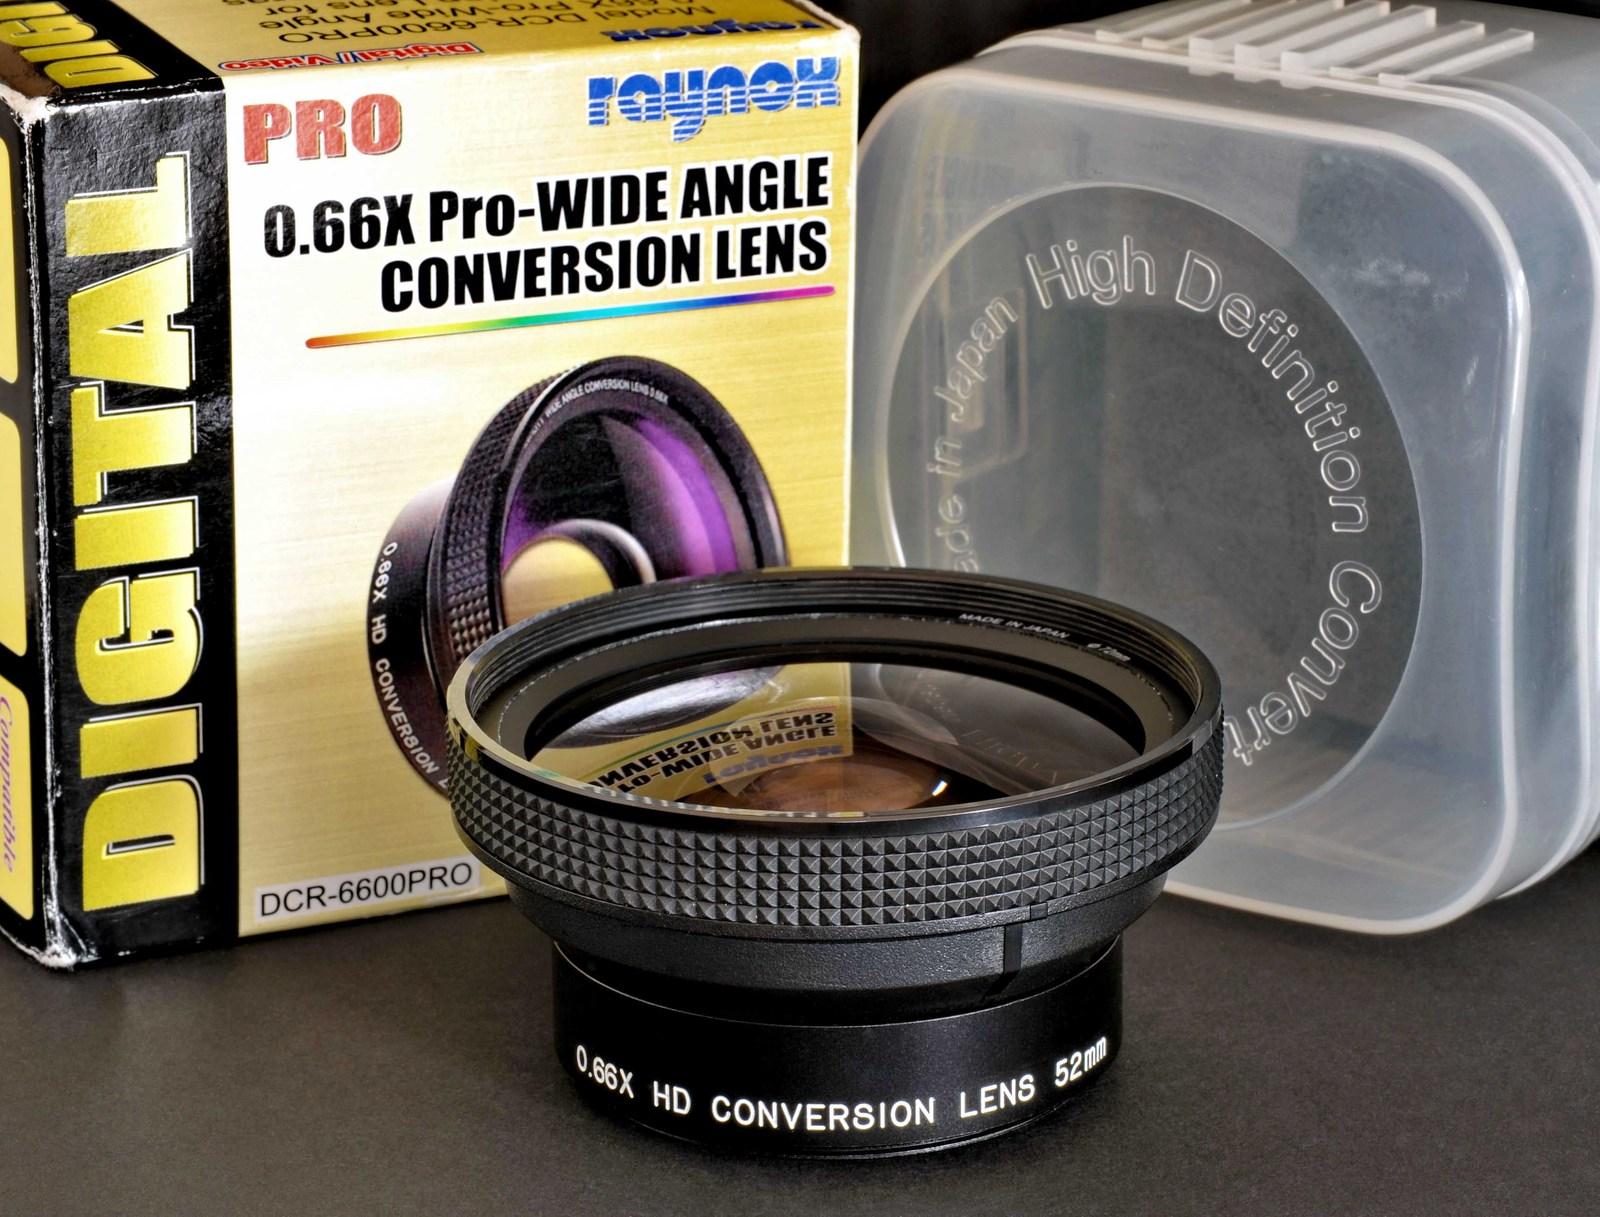 Raynox digital pro 0.66x pro wide angle conversion lens.1.sf